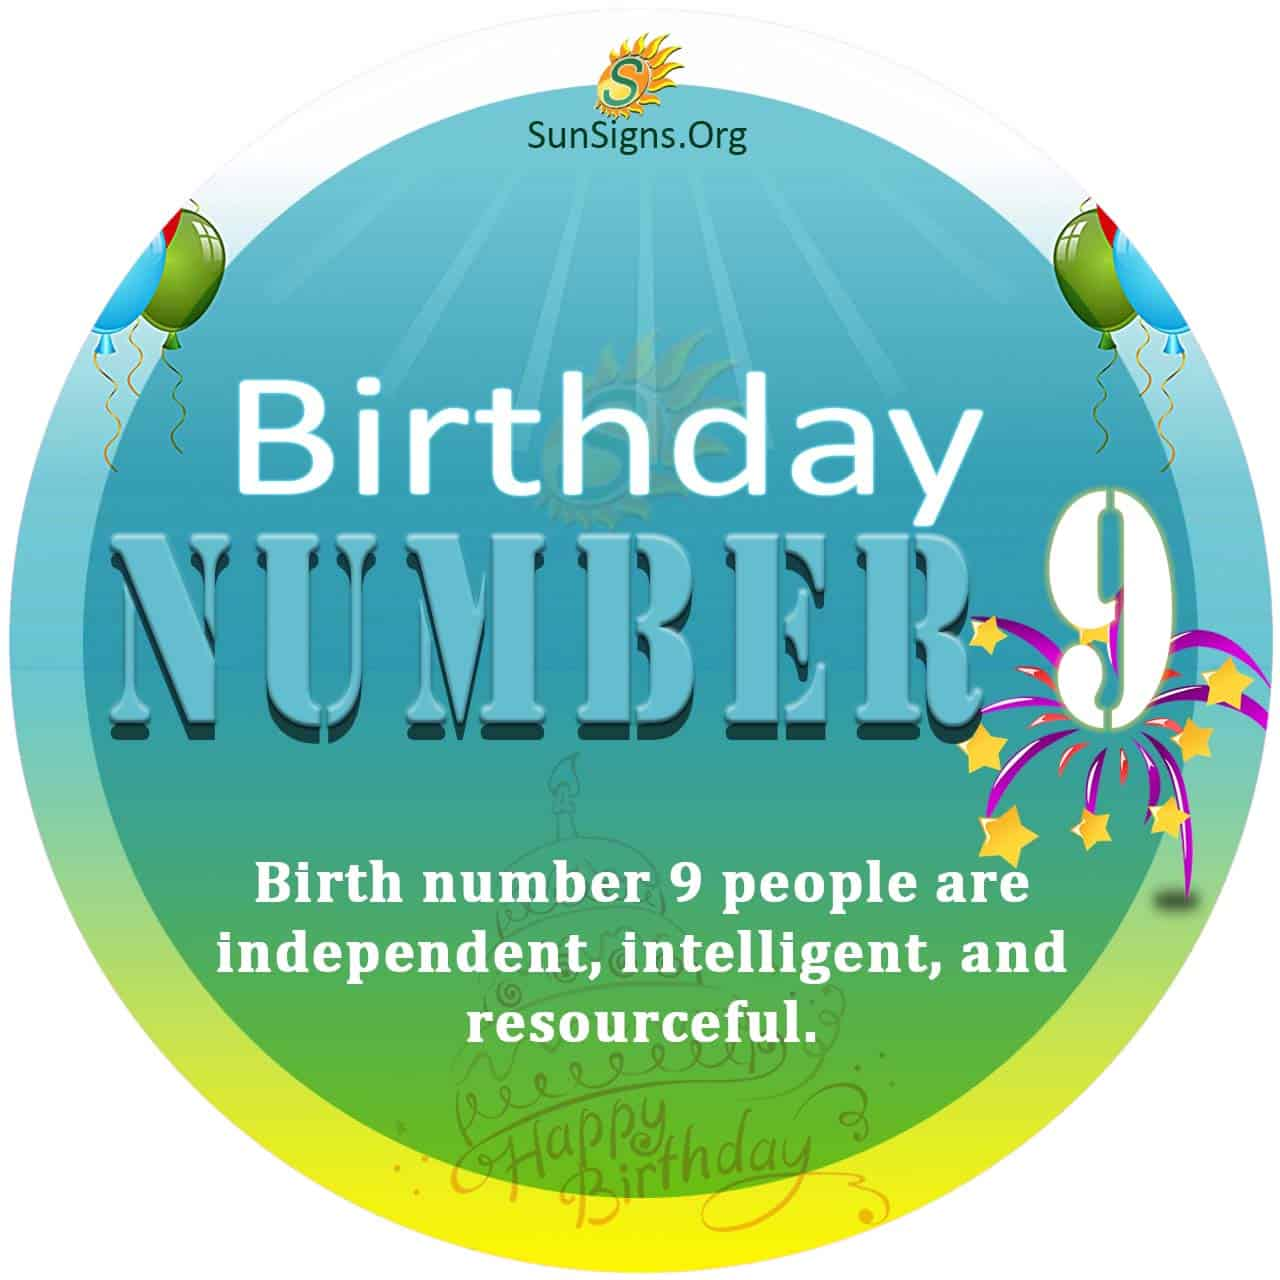 Birth Day Number 9 potentials